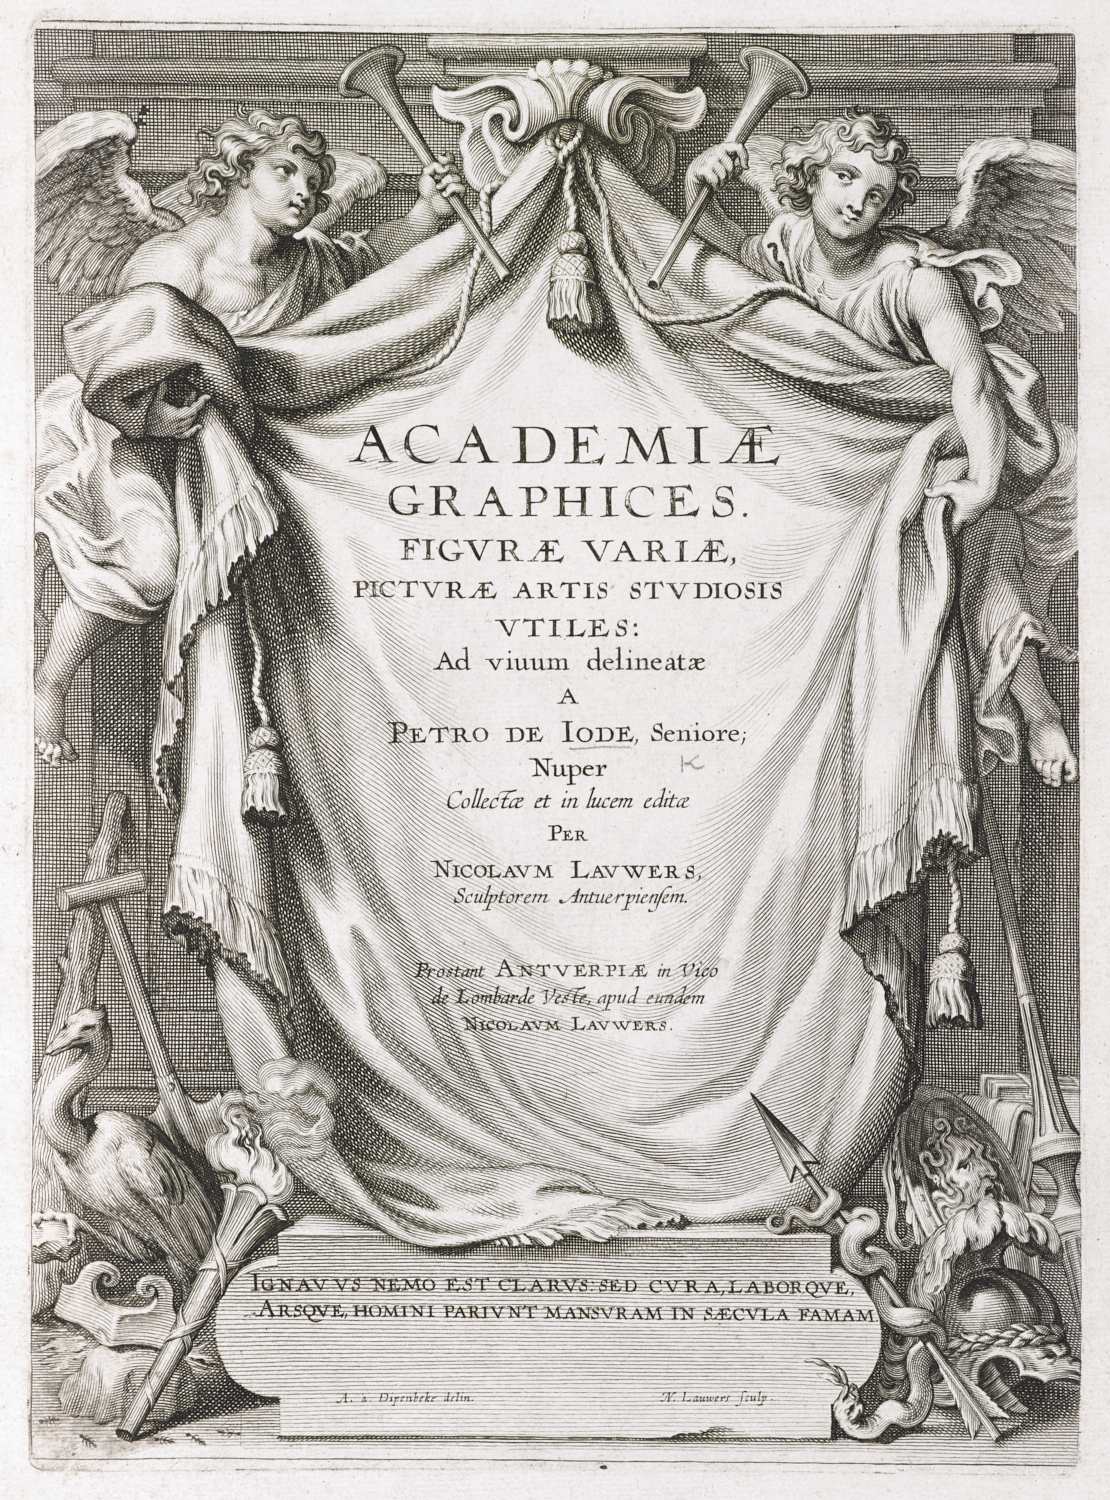 Nicolaes Lauwers, Cornelis Galle I, Pieter de Jode I [or II] and an anonymous hand after Pieter de Jode I, Academiae Graphices, published by Nicolaes Lauwers, Antwerp, c. 1630, 18 etchings and engravings, c. 400 x 250 mm, British Library, London, General Reference Collection 798.l.21.   Academiae Graphices, Figurae Variae, Pictureae Artis Studiosis Vtiles: Ad Viuum Delineatae a Petro de Iode, Seniore; Nuper Collectae et in Lucem Editae per Nicolaum Lauwers, Sculptorem Antuerpiensem (Antwerp: Nicolaes Lauwers, 1629), 798.l.21. Nicolaes Lauwers (1600-52) after Abraham Diepenbeke (1596-1675), Title Page to Academiae Graphices, published by Nicolaes Lauwers, Antwerp, 1629, engraving, plate 37 x 26 cm, on sheet 51 x 34 cm, 798.l.21.